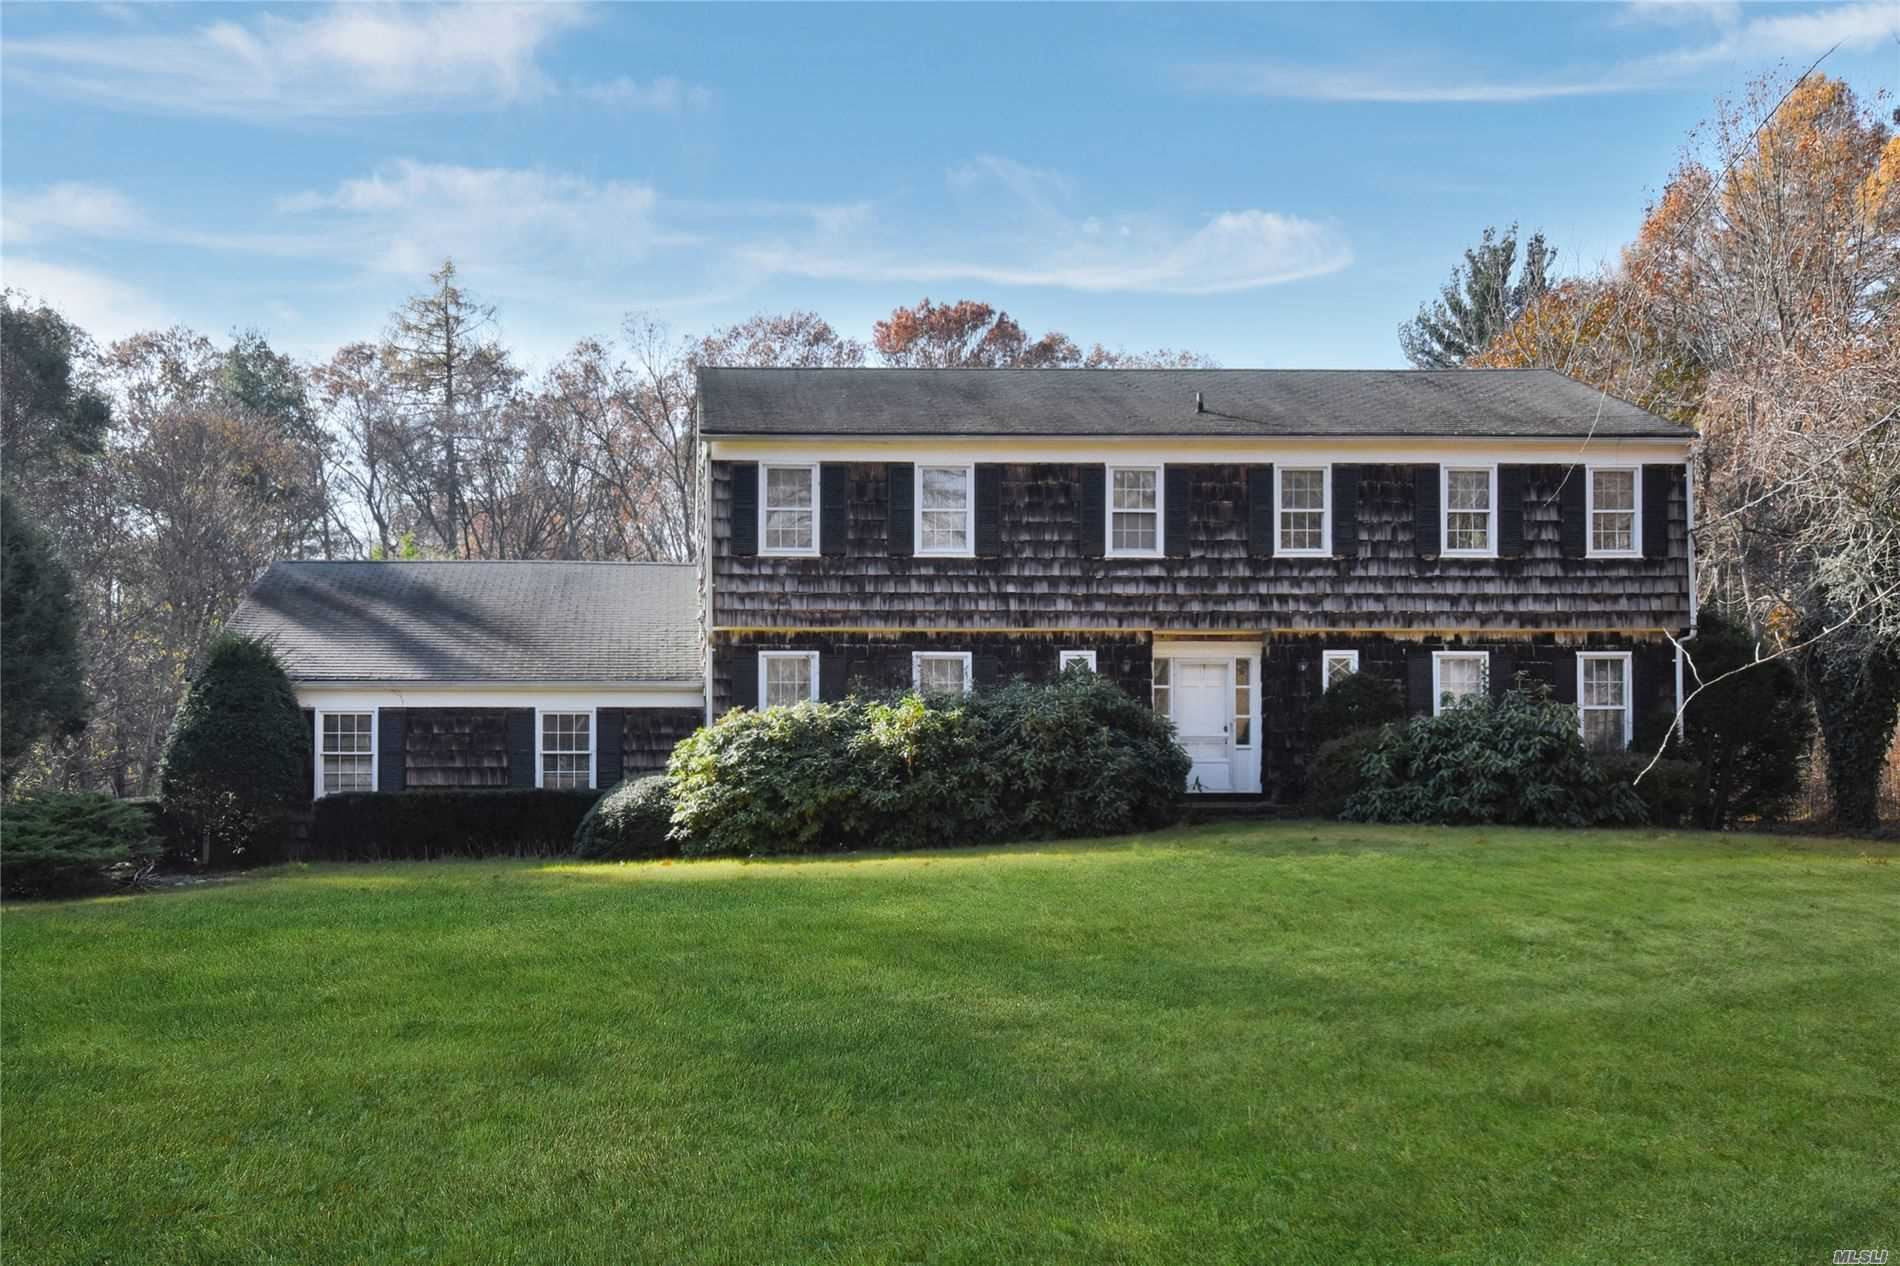 3A Ivy Court, Brookville, NY 11545 - MLS#: 3201834